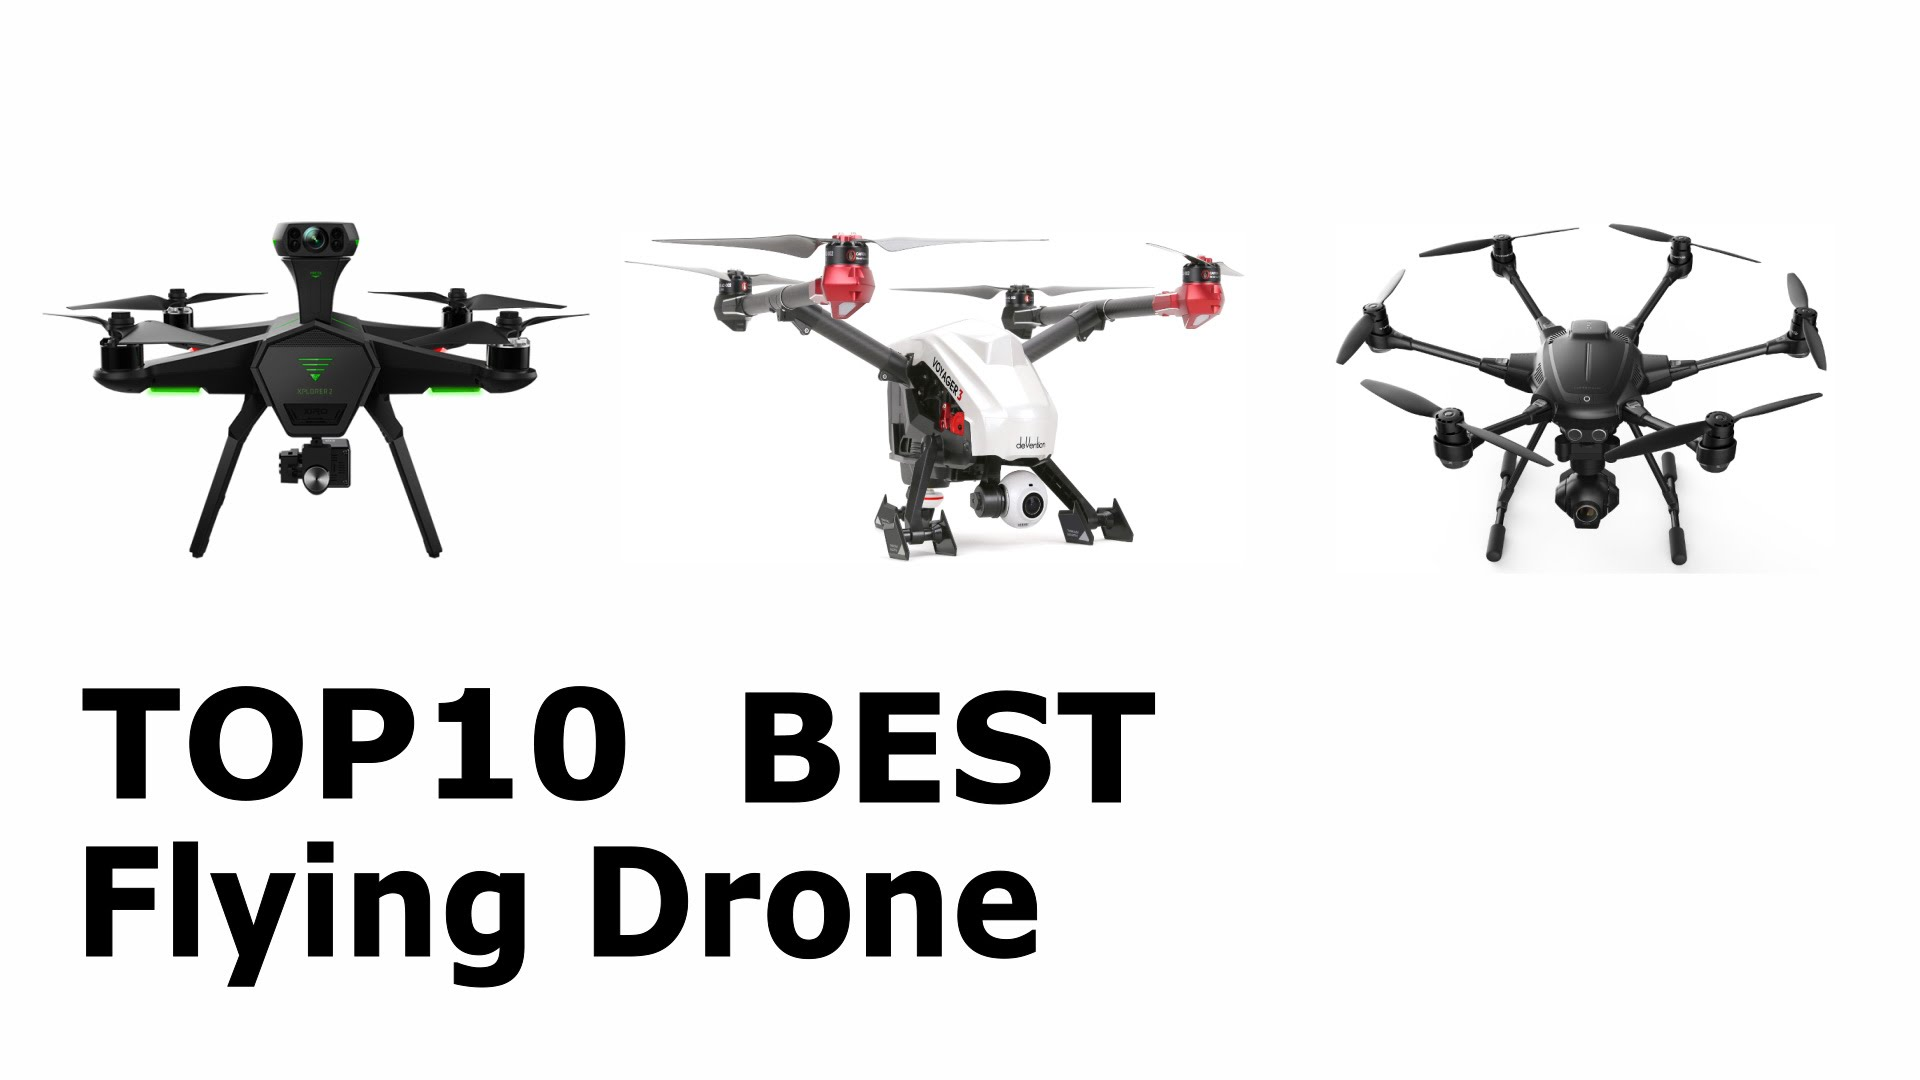 Top 10 Best Drone